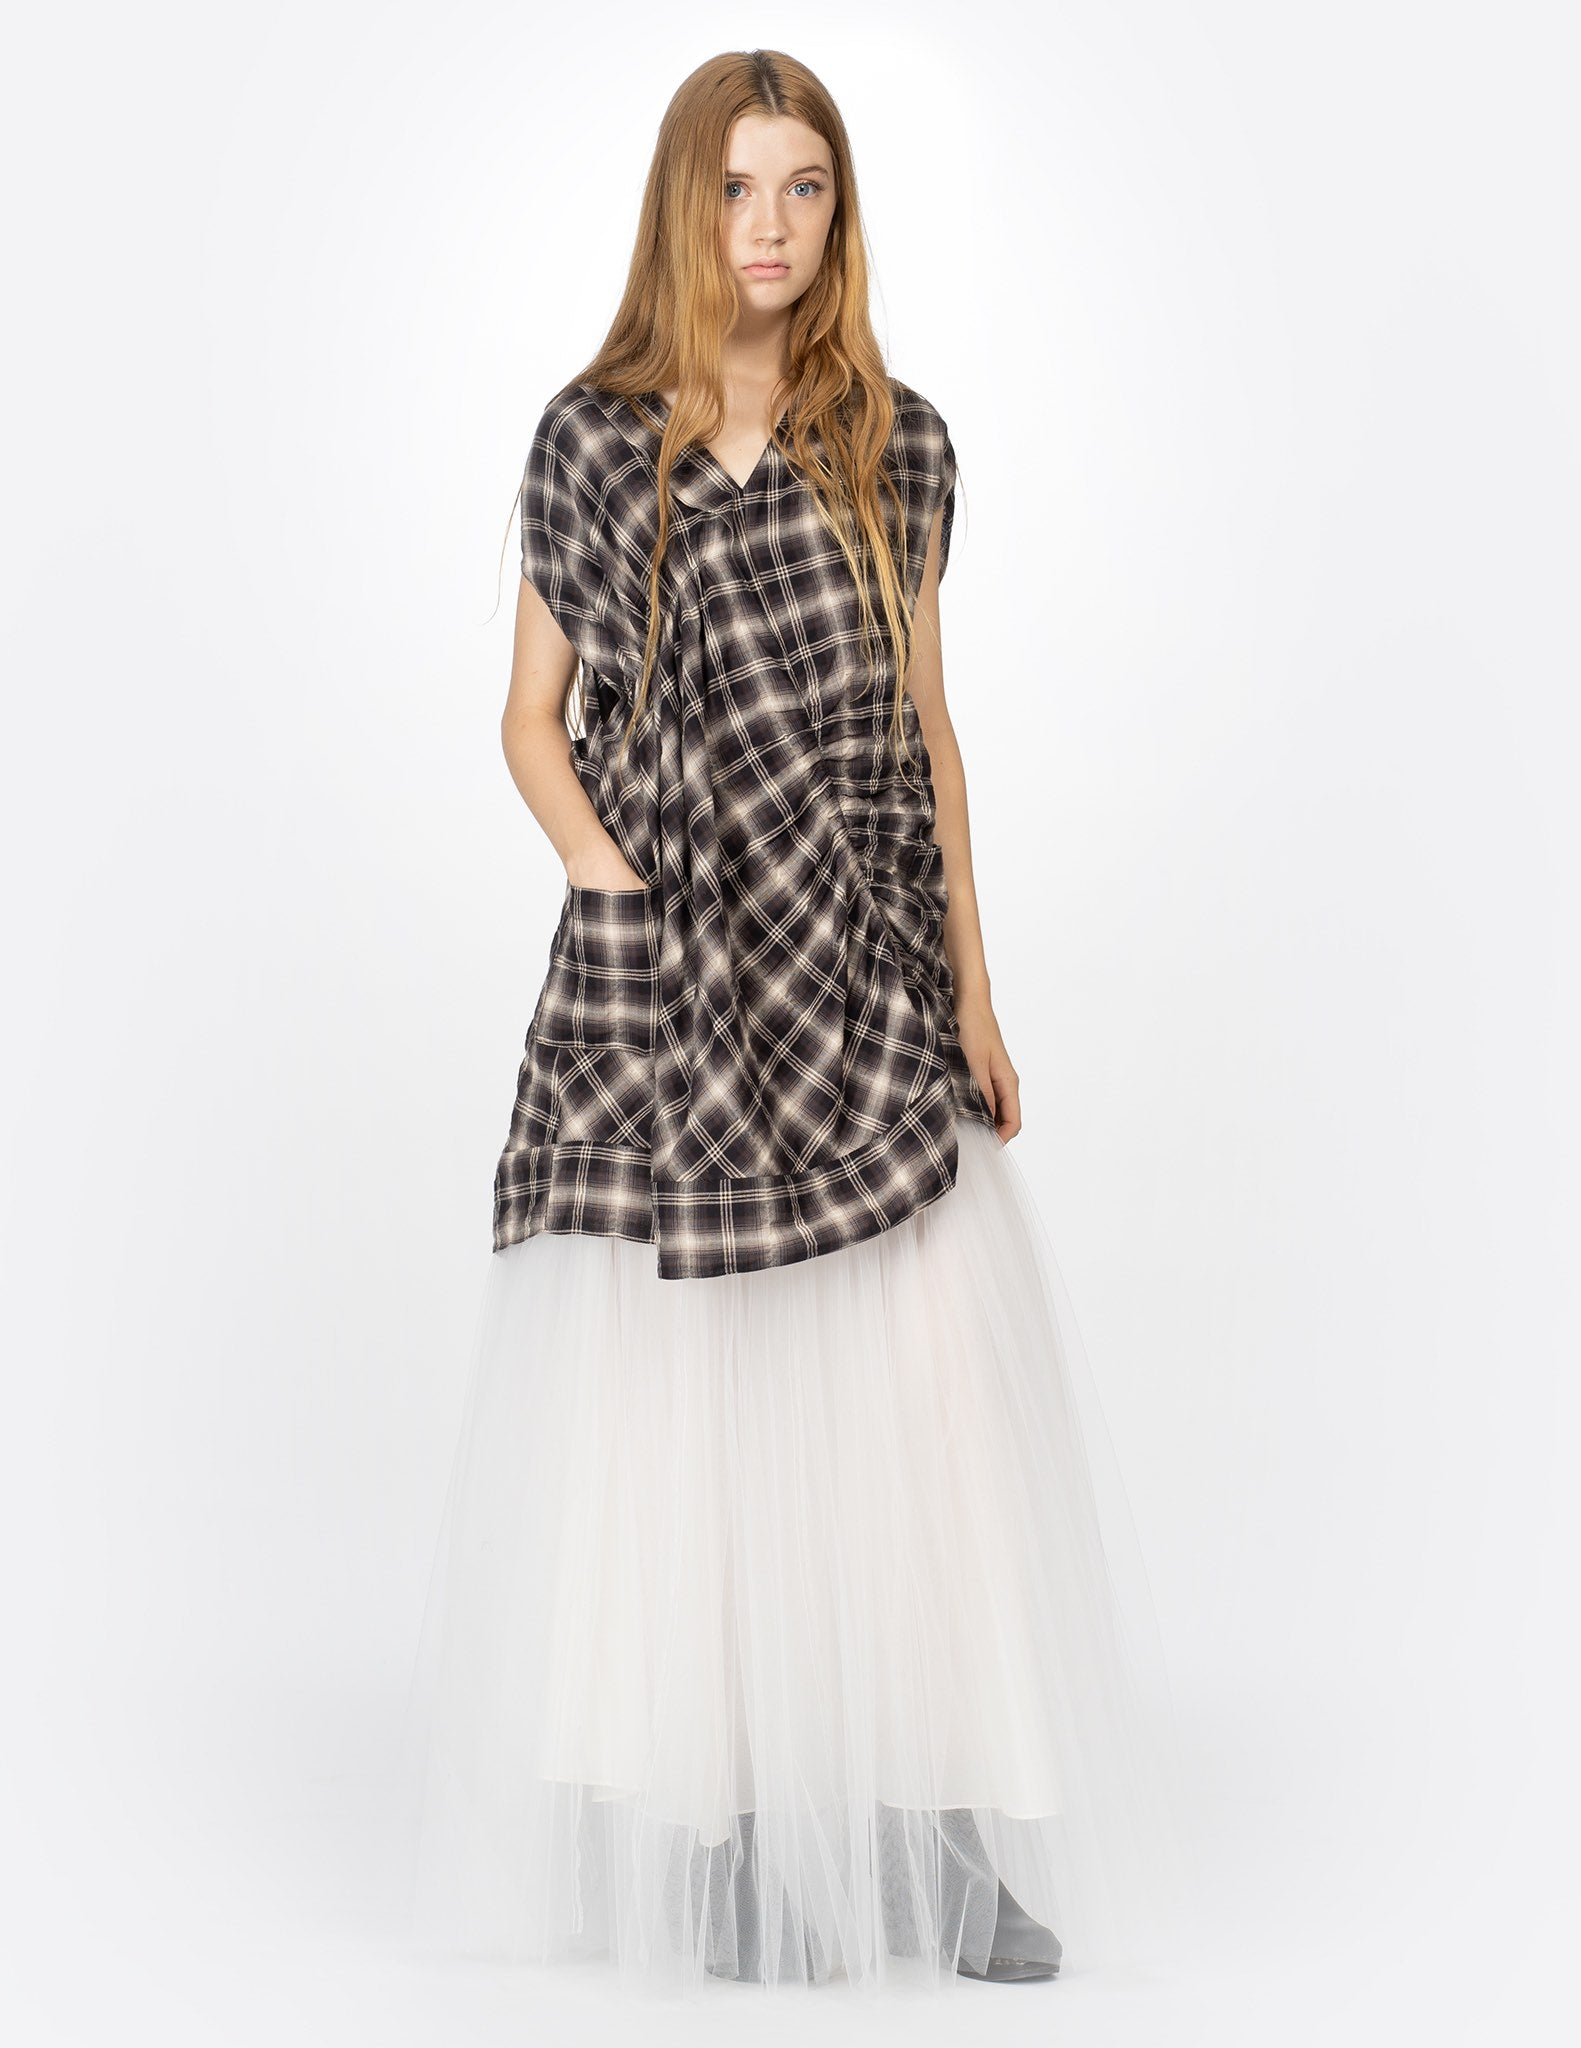 morgane le fay plaid dress with v-neck collar